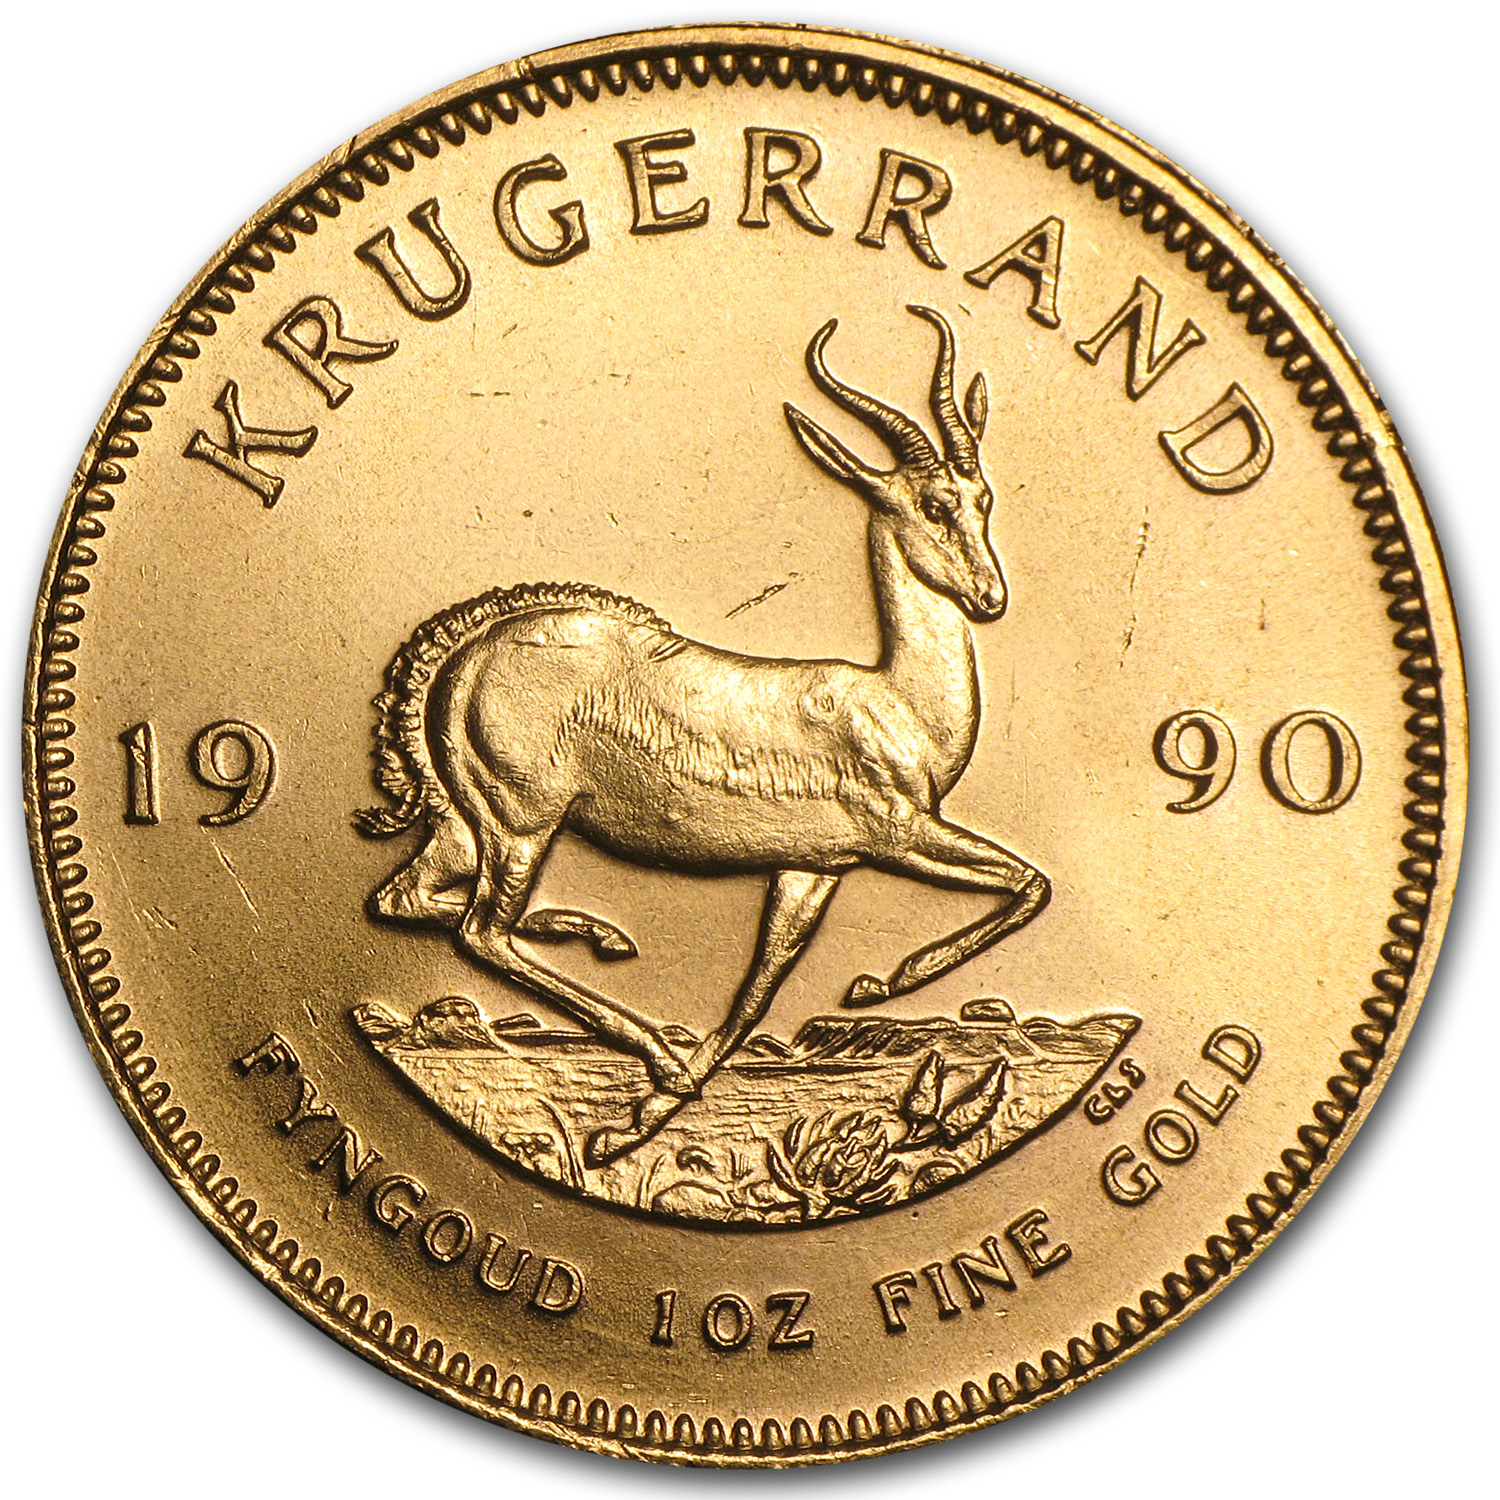 1990 South Africa 1 oz Gold Krugerrand